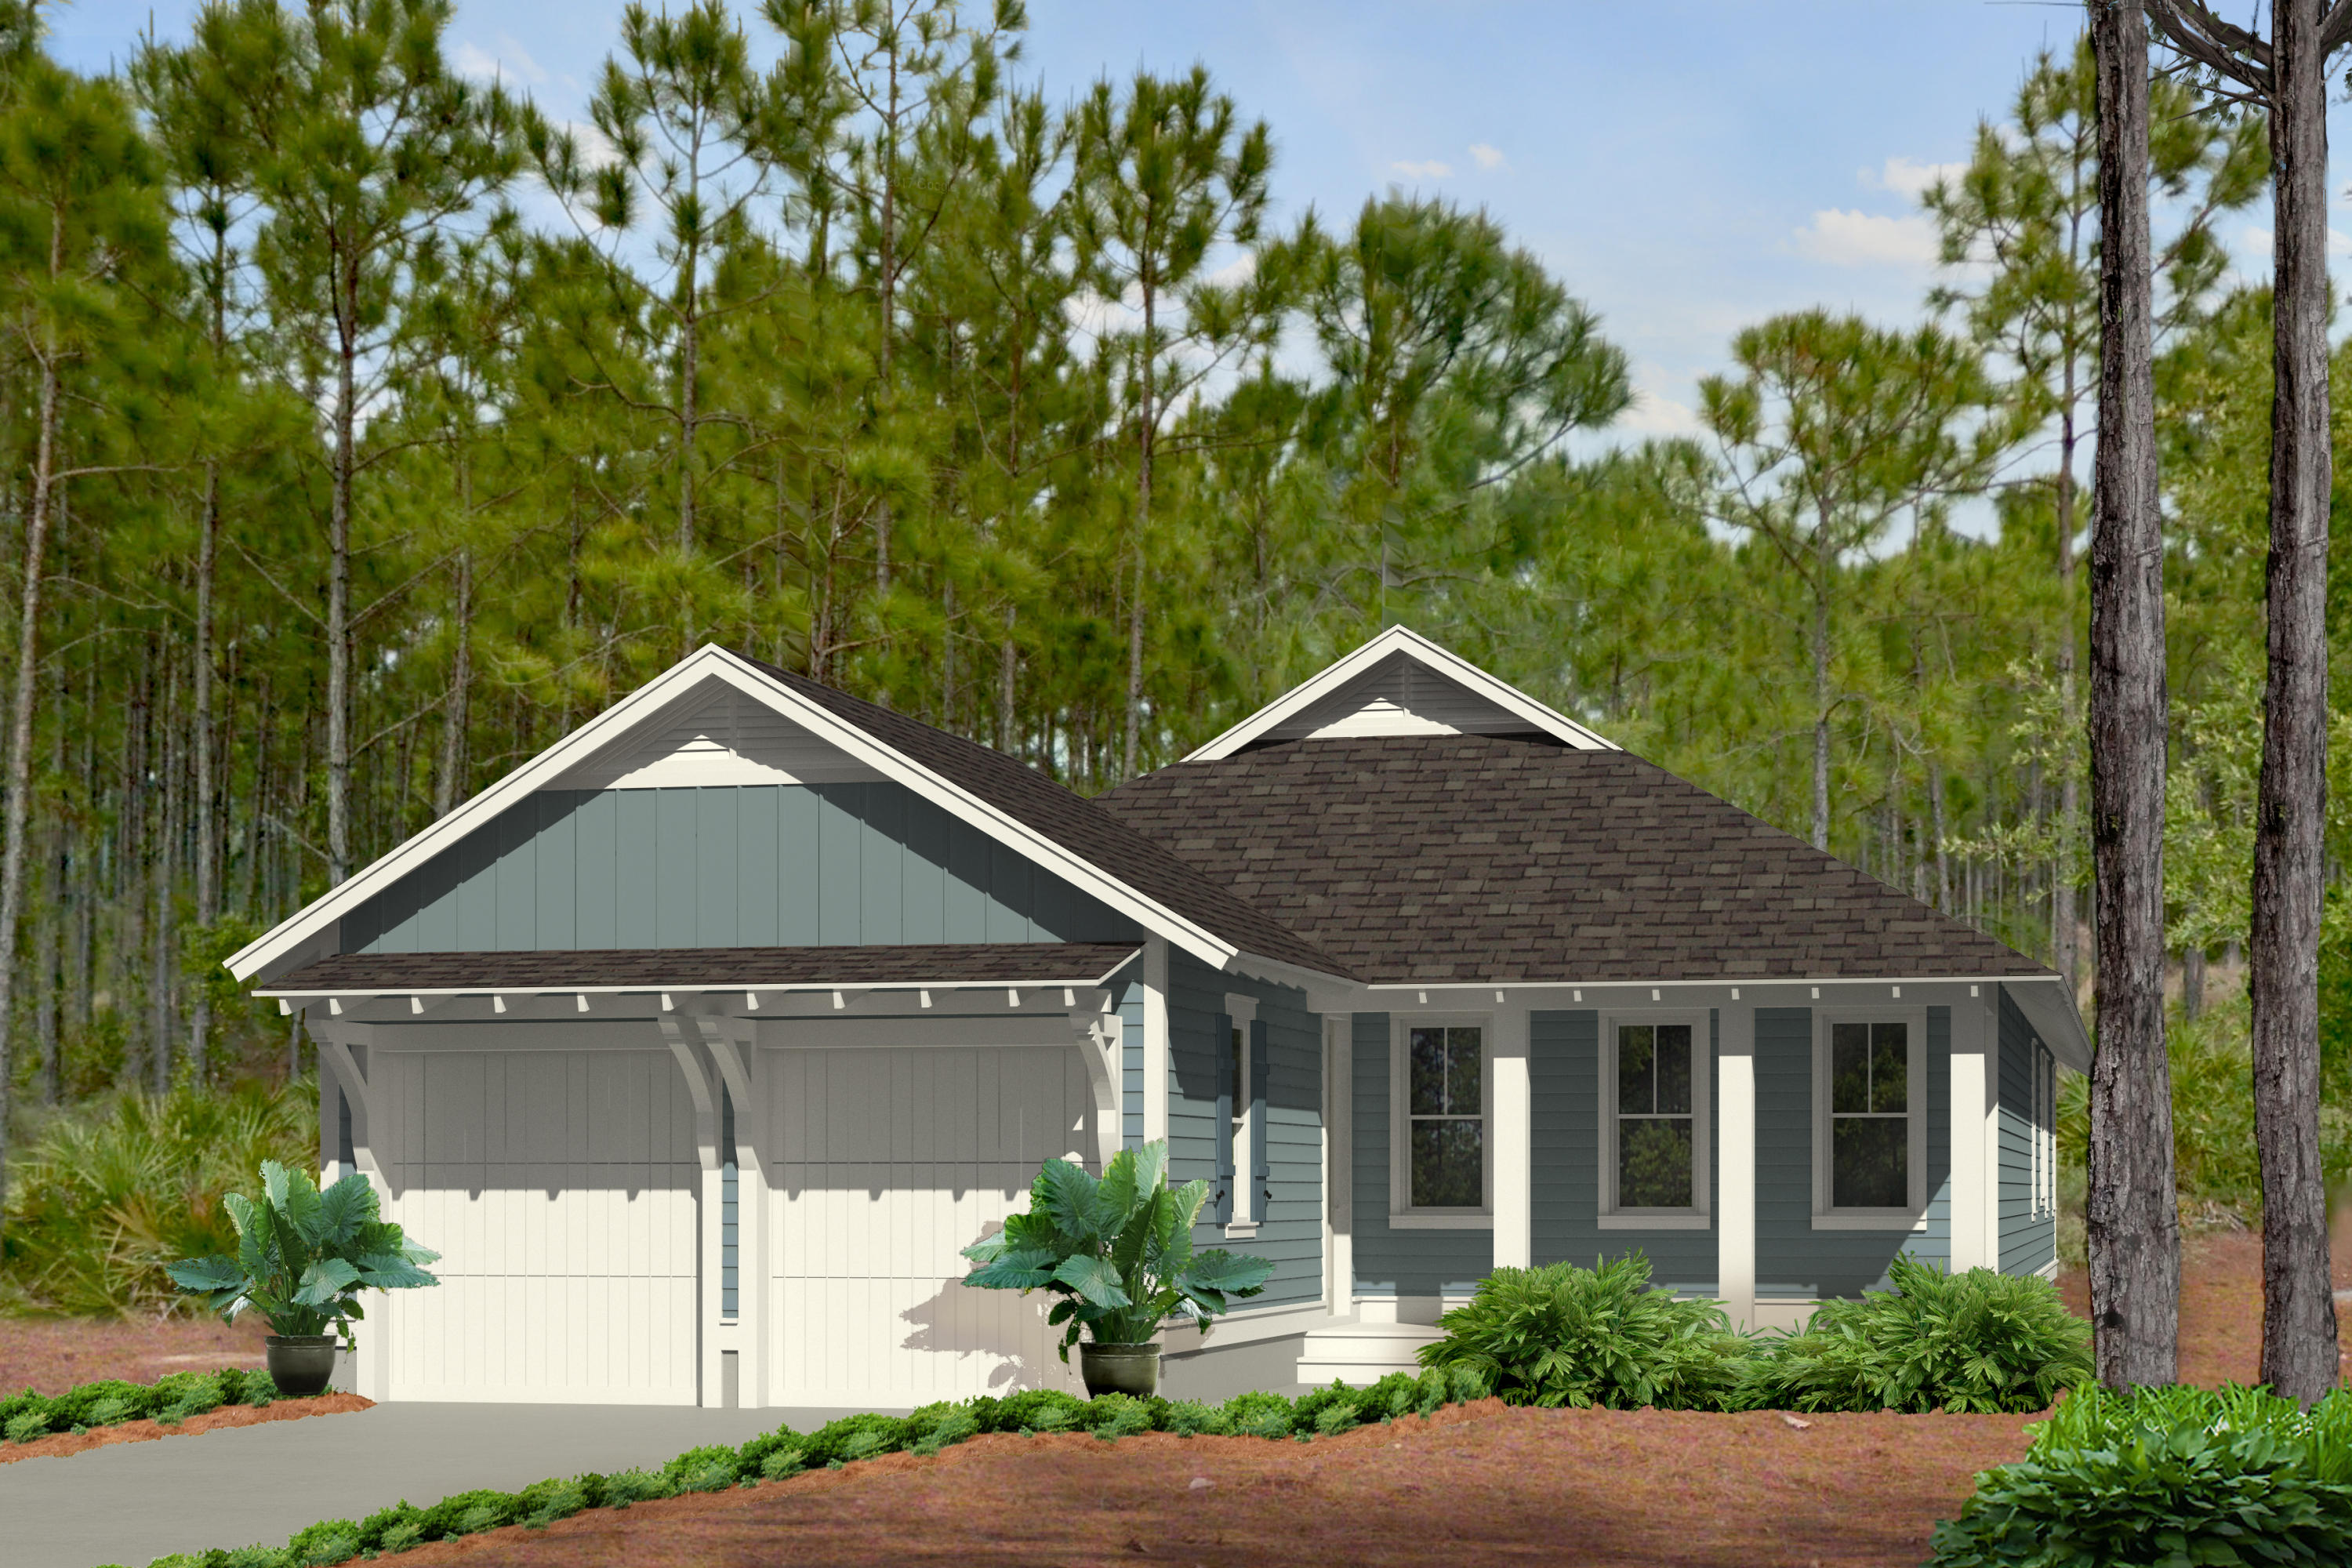 This 1-story Romair Construction Begonia II with Study plan has 3 bedrooms with full-size walk-in cl